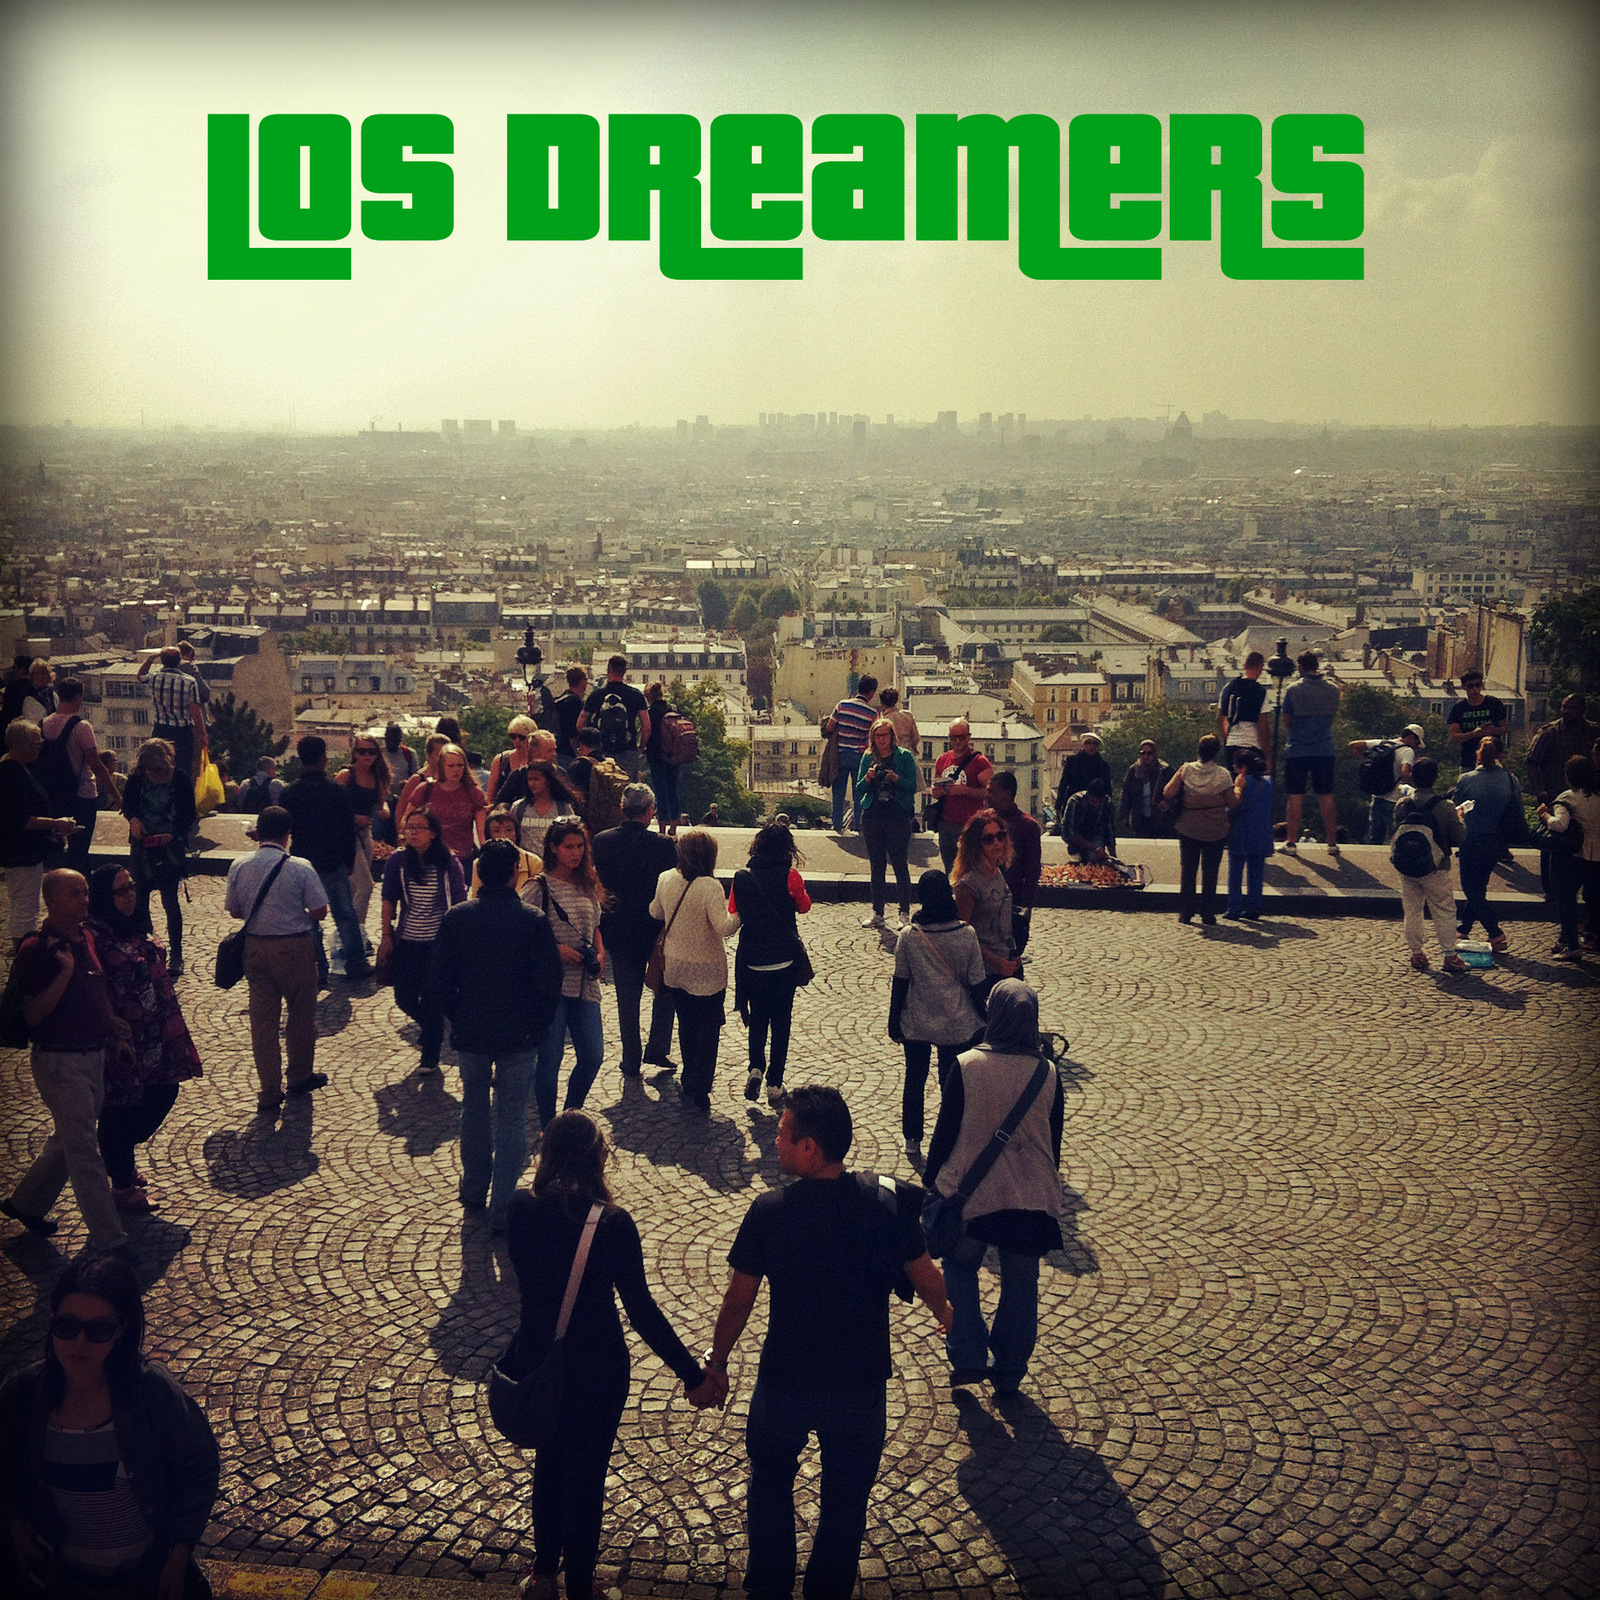 Photo: 'Los Dreamers' self-titled album cover